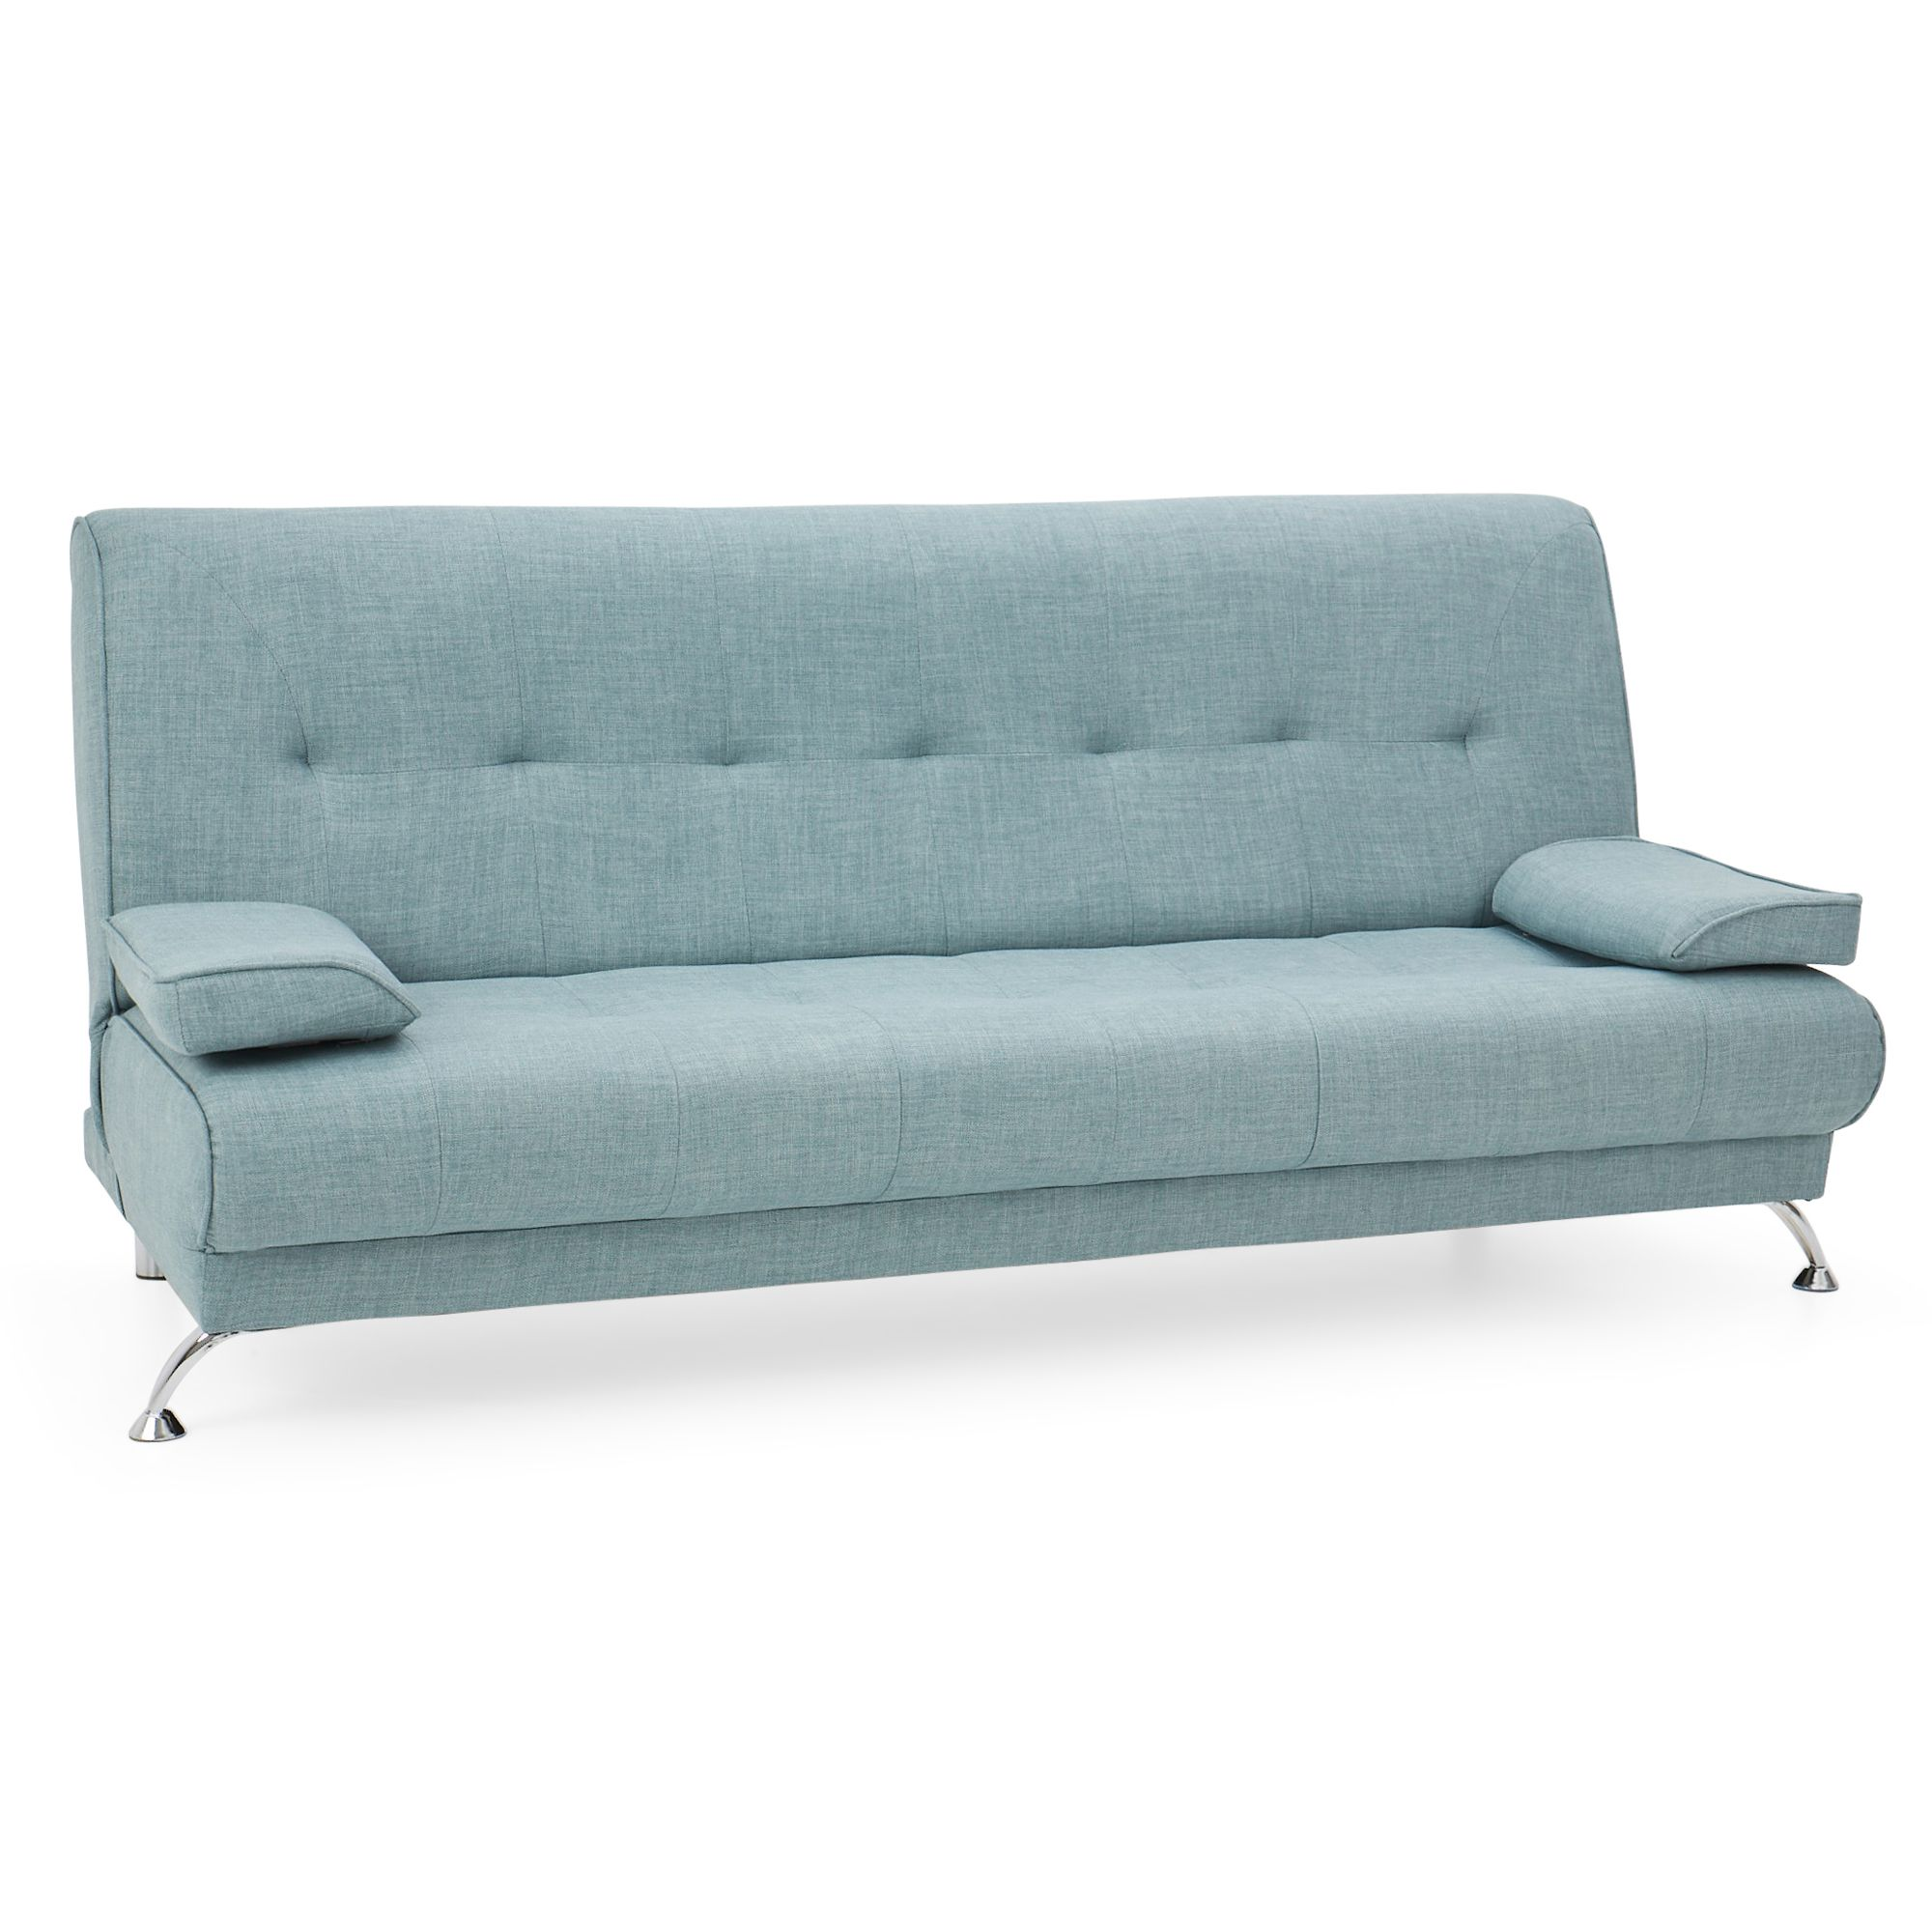 Venice Fabric Sofa Bed Next Day